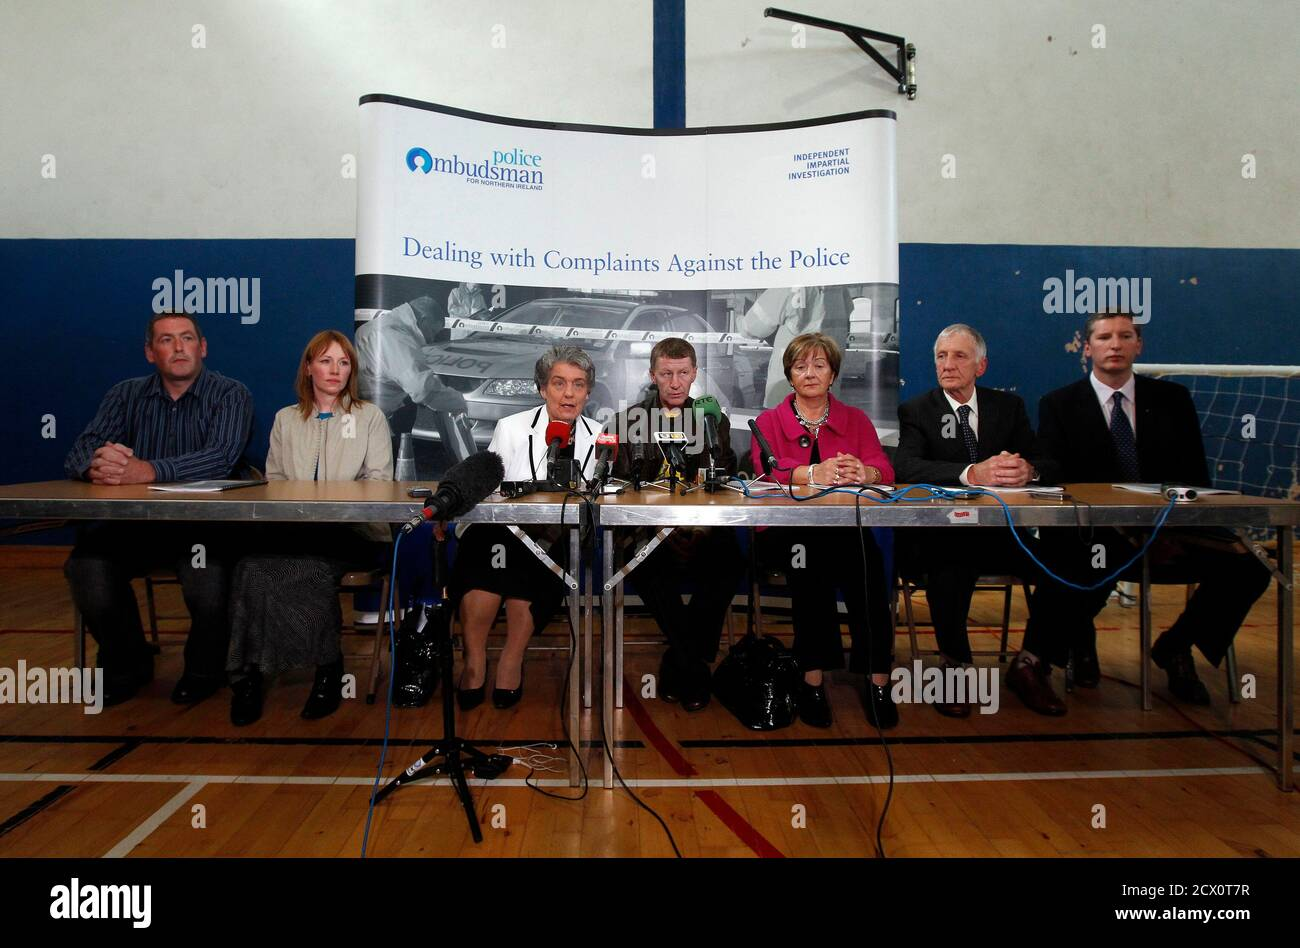 Victims and relatives (from L) Colm McClelland,Tracey Deans, Mary Hamilton, Mark Eakin, Marjorie Leslie, Gordon Miller, James Miller, of the 1972 bombings of Claudy speak during a news conference in Claudy, Northern Ireland August 24, 2010. The government, the police and the Catholic Church colluded to protect a priest suspected of involvement in a 1972 bombing in Northern Ireland that killed 9 people, a report said on Tuesday.The Police Ombudsman's eight-year probe revealed a cardinal was involved in moving Father James Chesney out of Northern Ireland, highlighting anew the way the Church hie Stock Photo